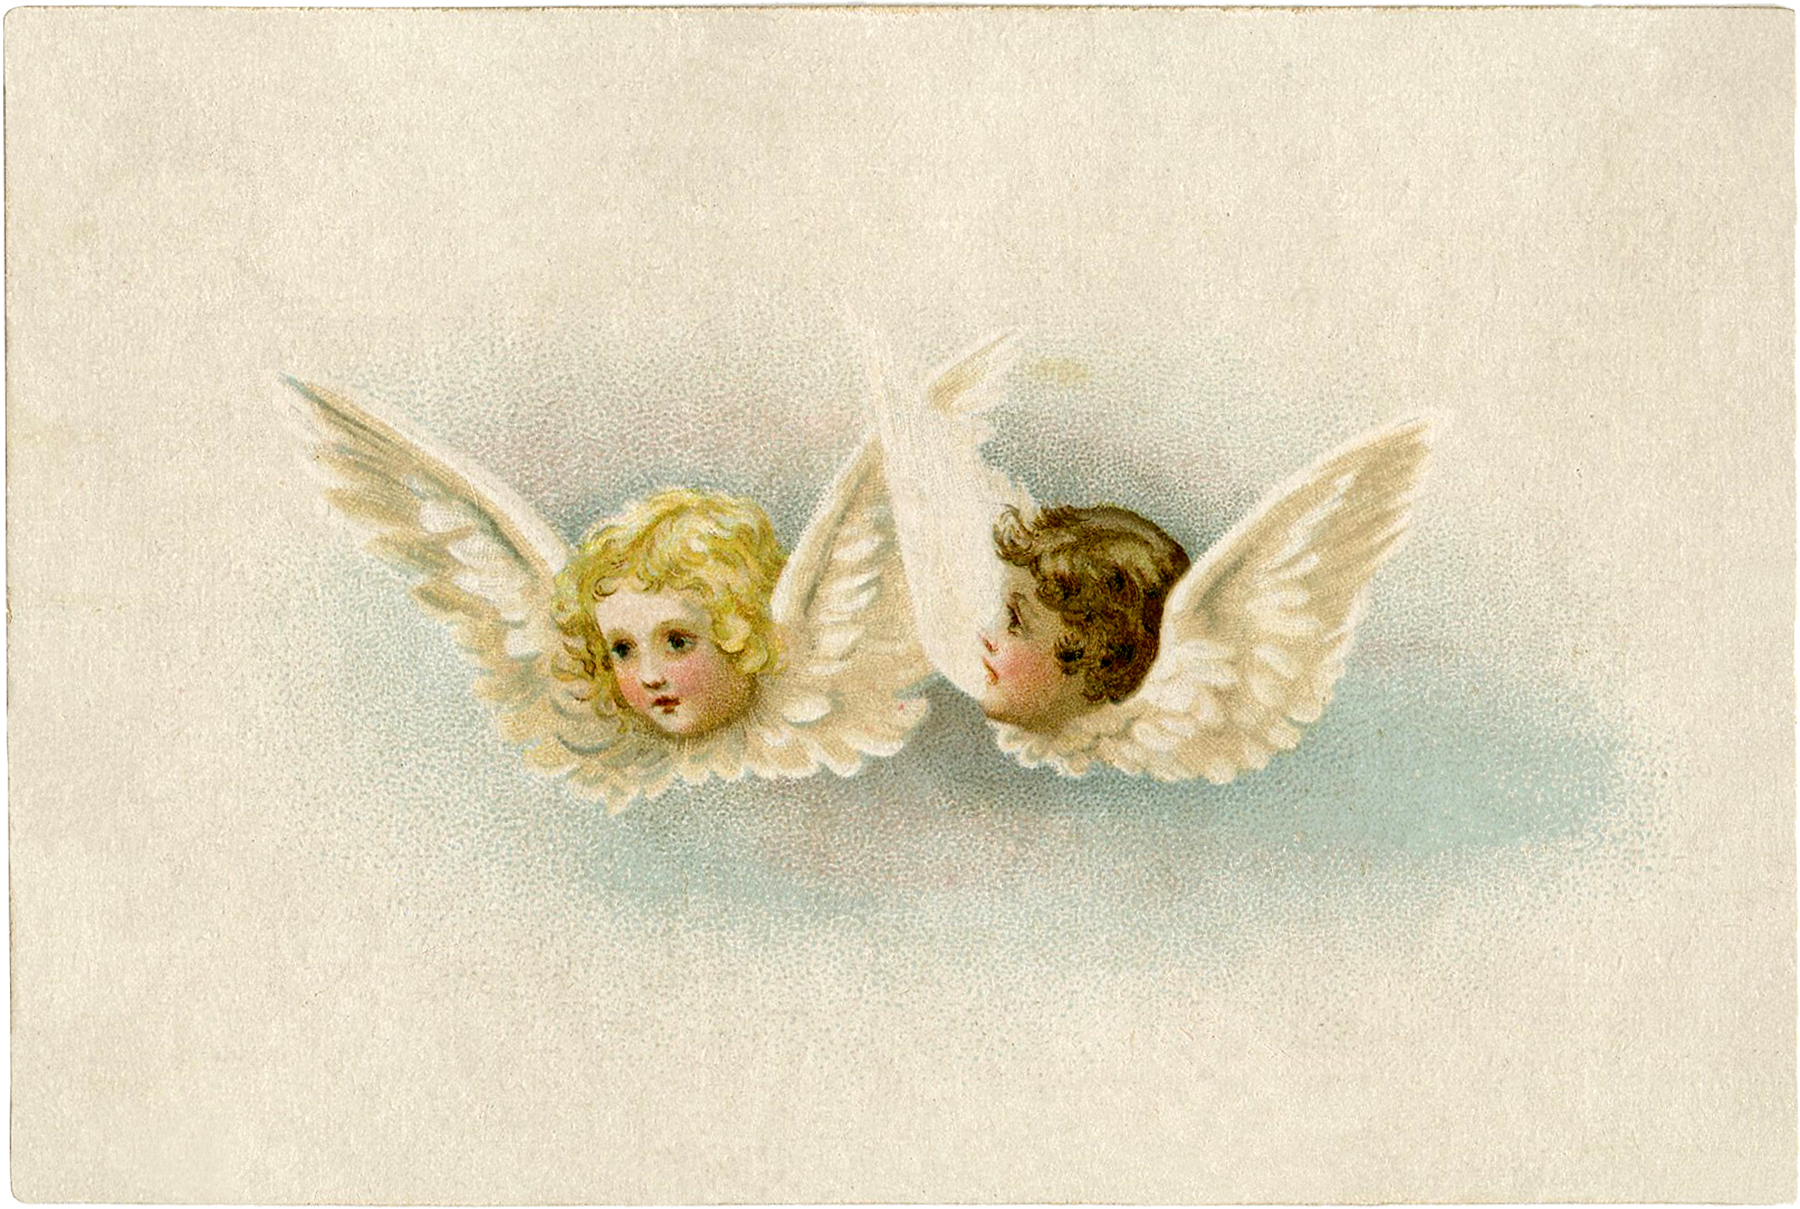 Angels victorian clipart banner stock Free Vintage Angels Clip Art - Sweet! - The Graphics Fairy banner stock